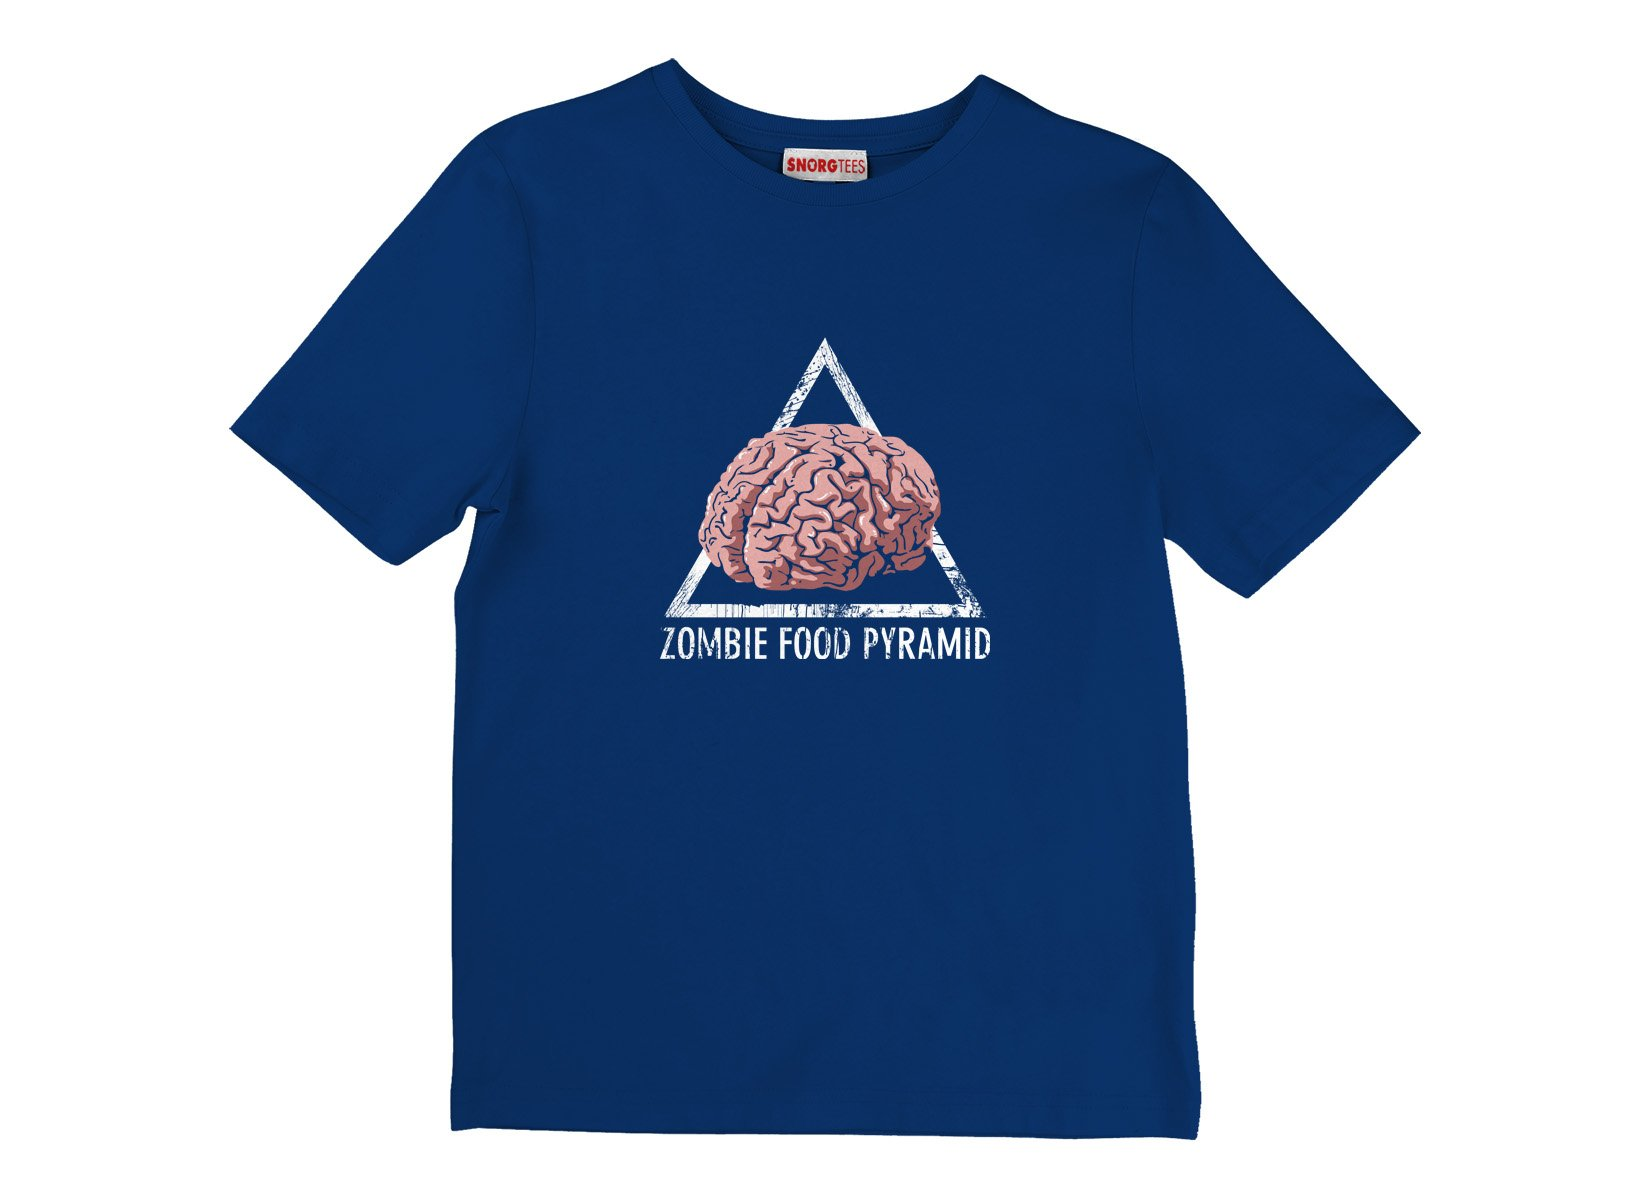 Zombie Food Pyramid on Kids T-Shirt